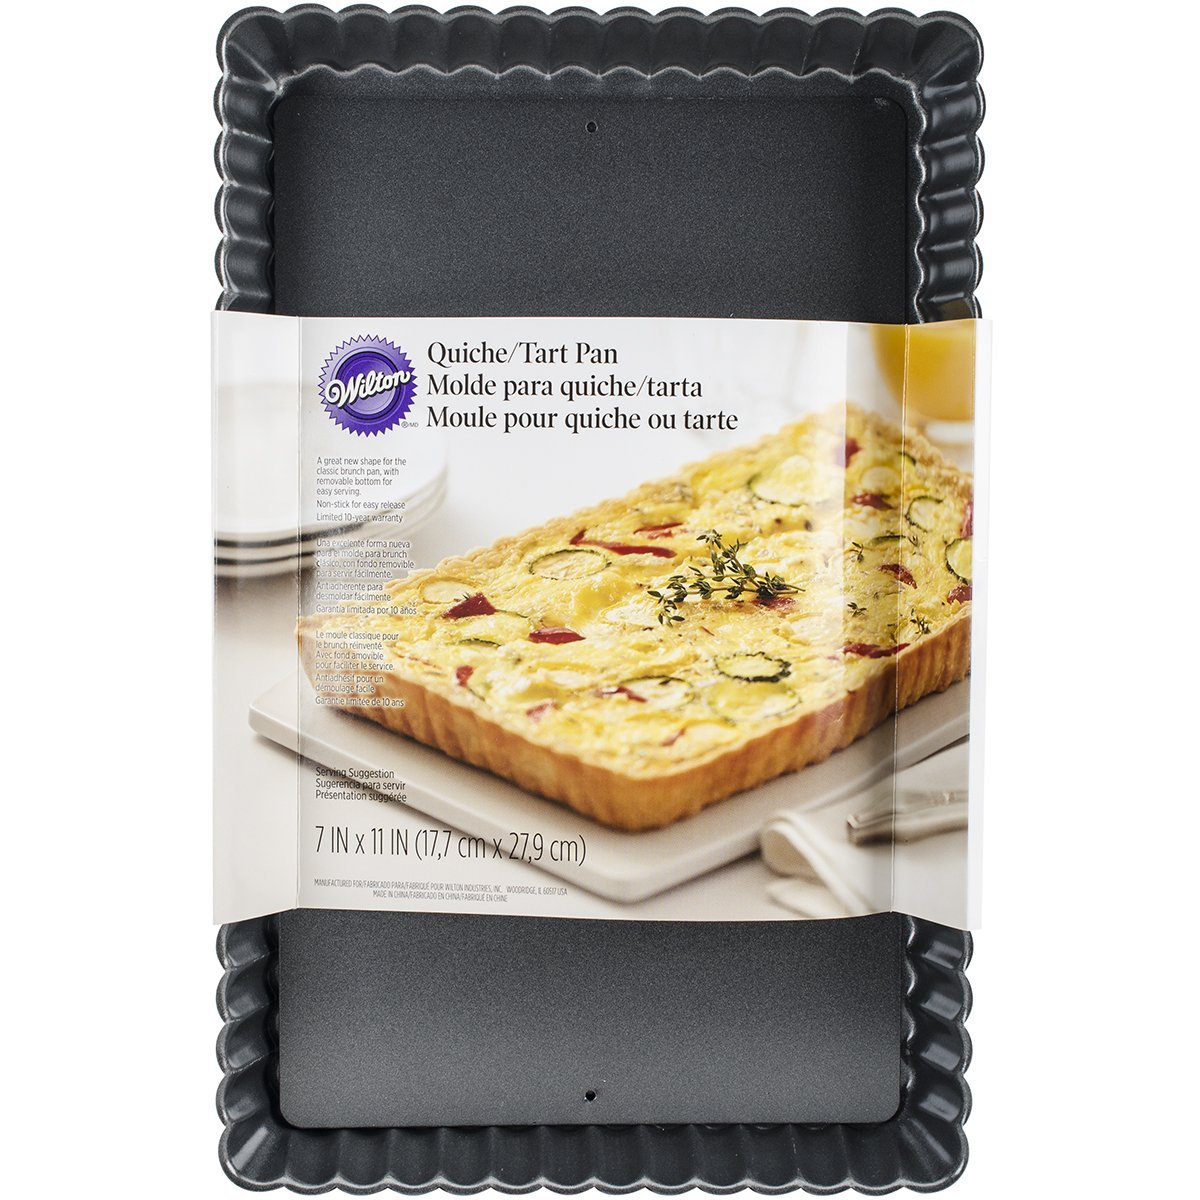 Amazon.com: Wilton 2105-8459 Quiche Tart Pan, 11 x 7-Inch: Kitchen & Dining